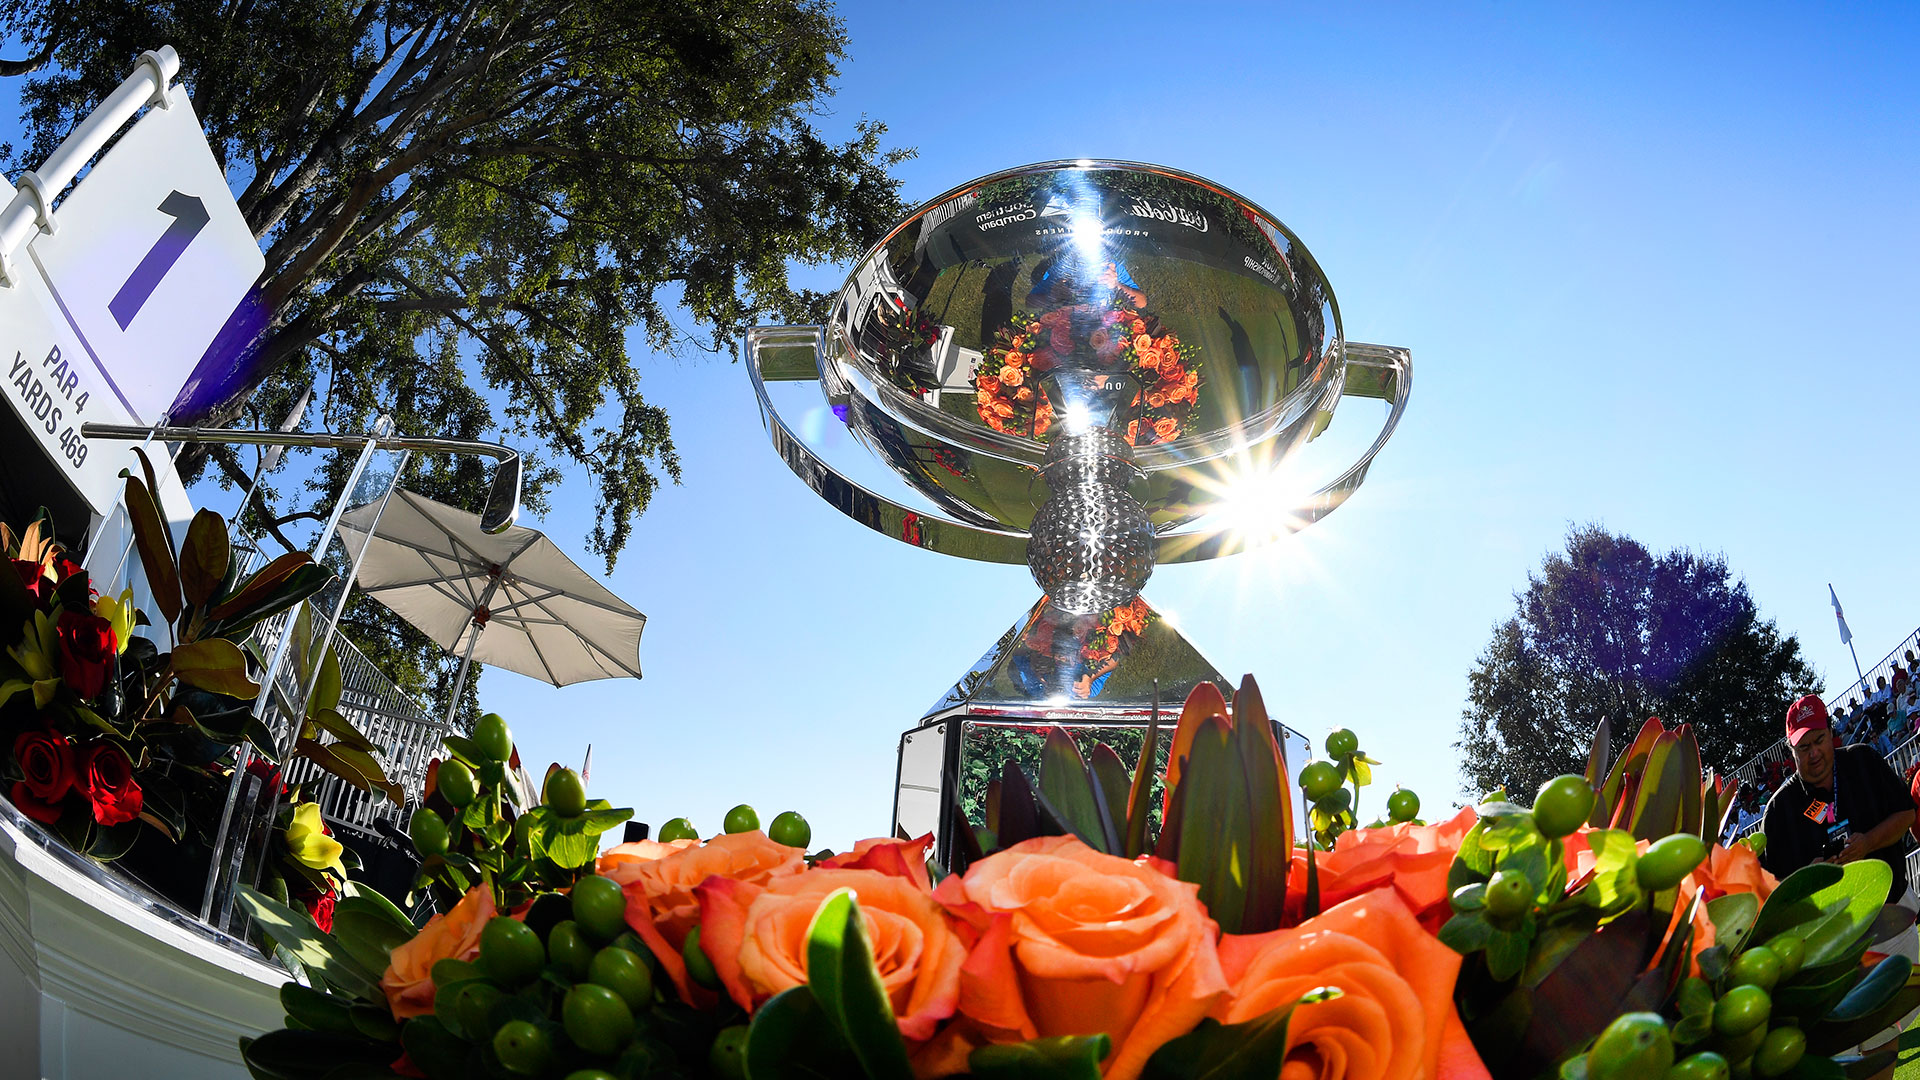 pros and cons in new fedexcup playoff schedule golf channel - Fedex Garden City